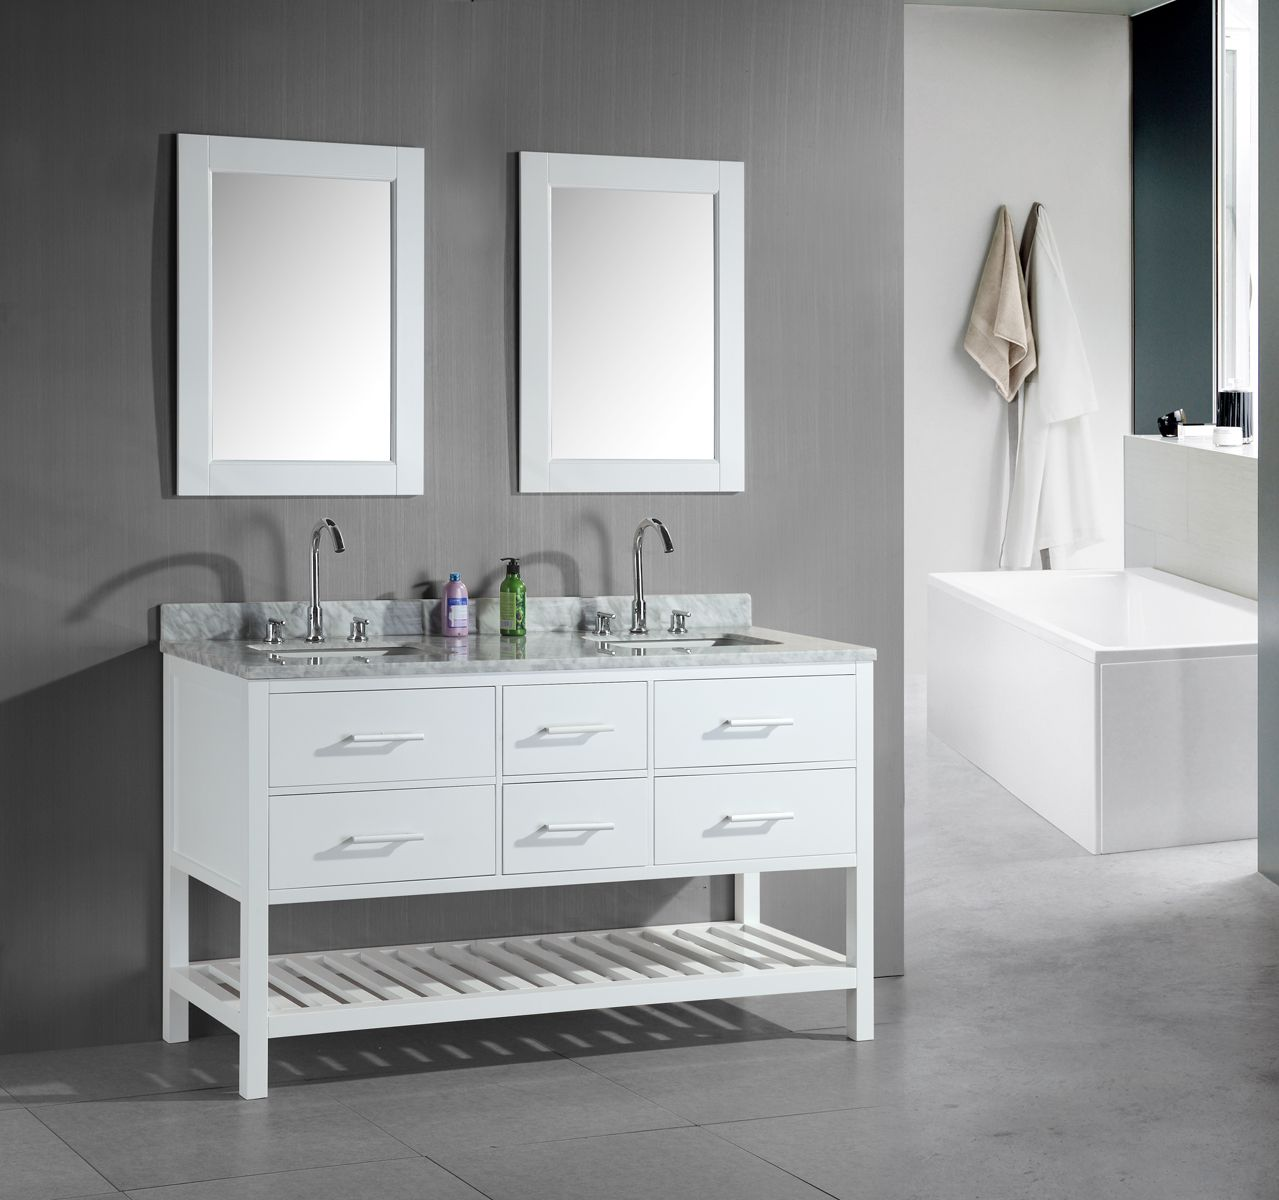 Charmant London Double Sink Bathroom White Vanity Set   Overstock™ Shopping   Great  Deals On Design Element Bathroom Vanities